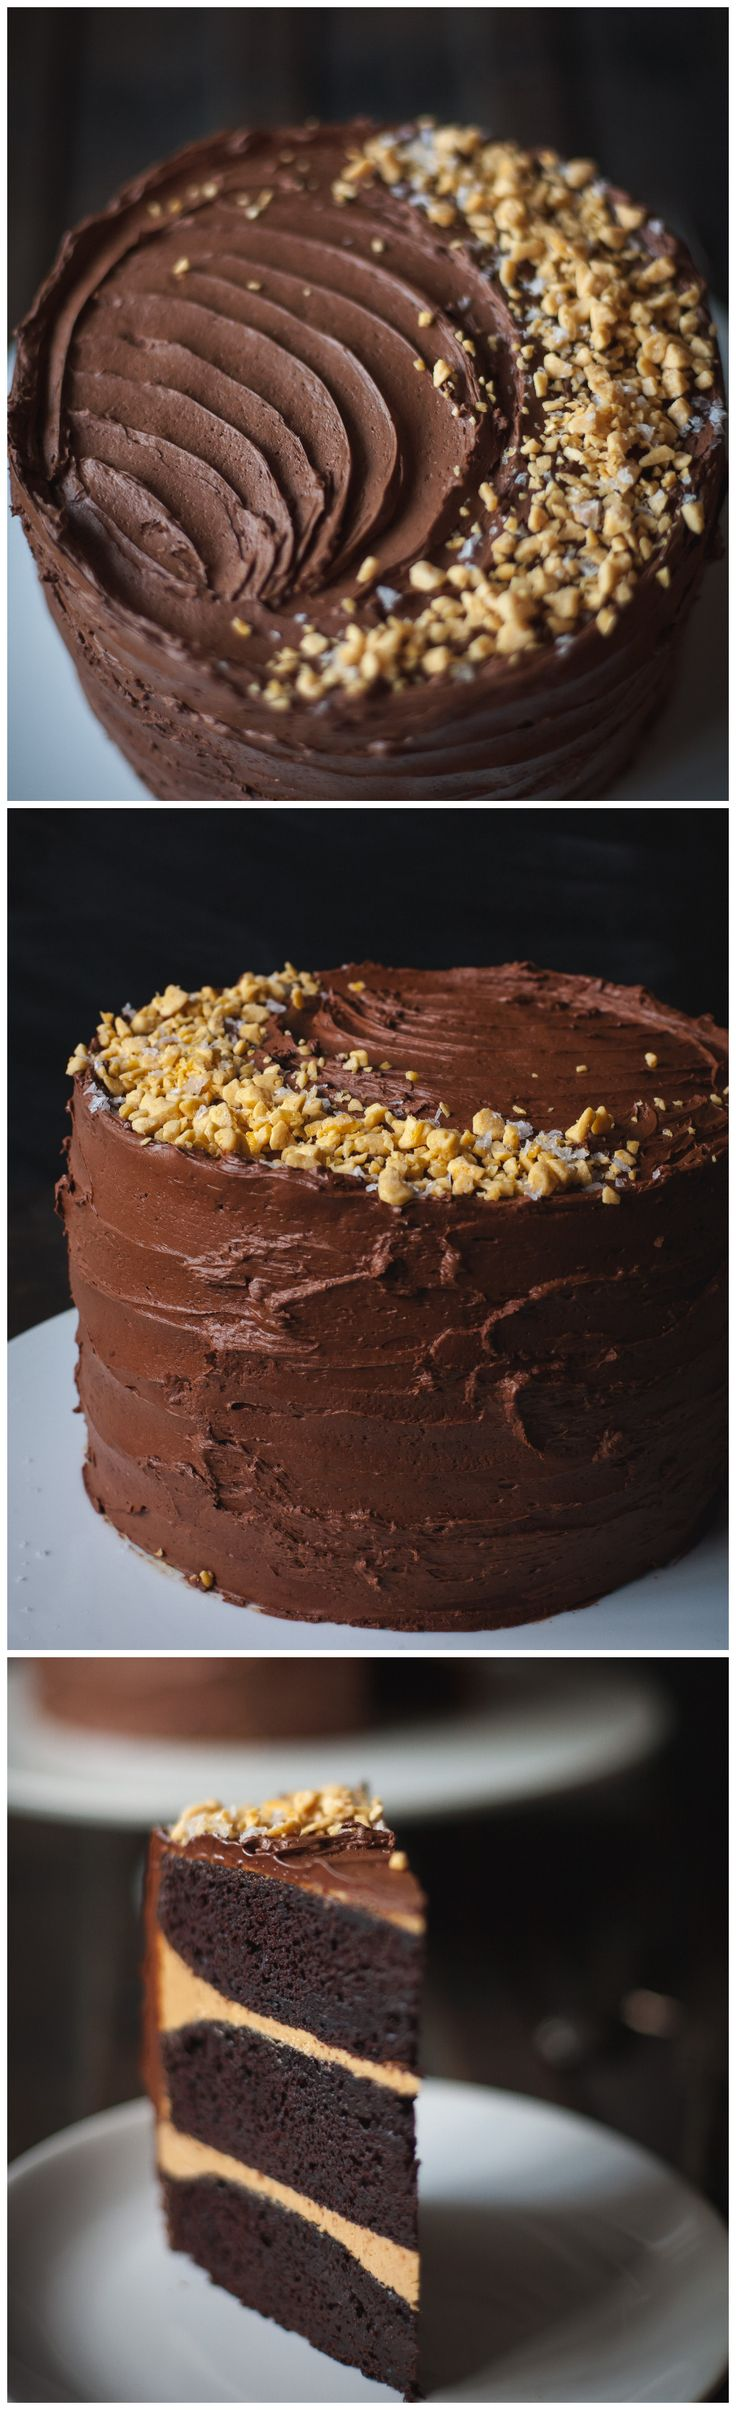 Chocolate:  #Chocolate cake with salted caramel buttercream and crushed honeycomb candy, covered in dark chocolate ganache.